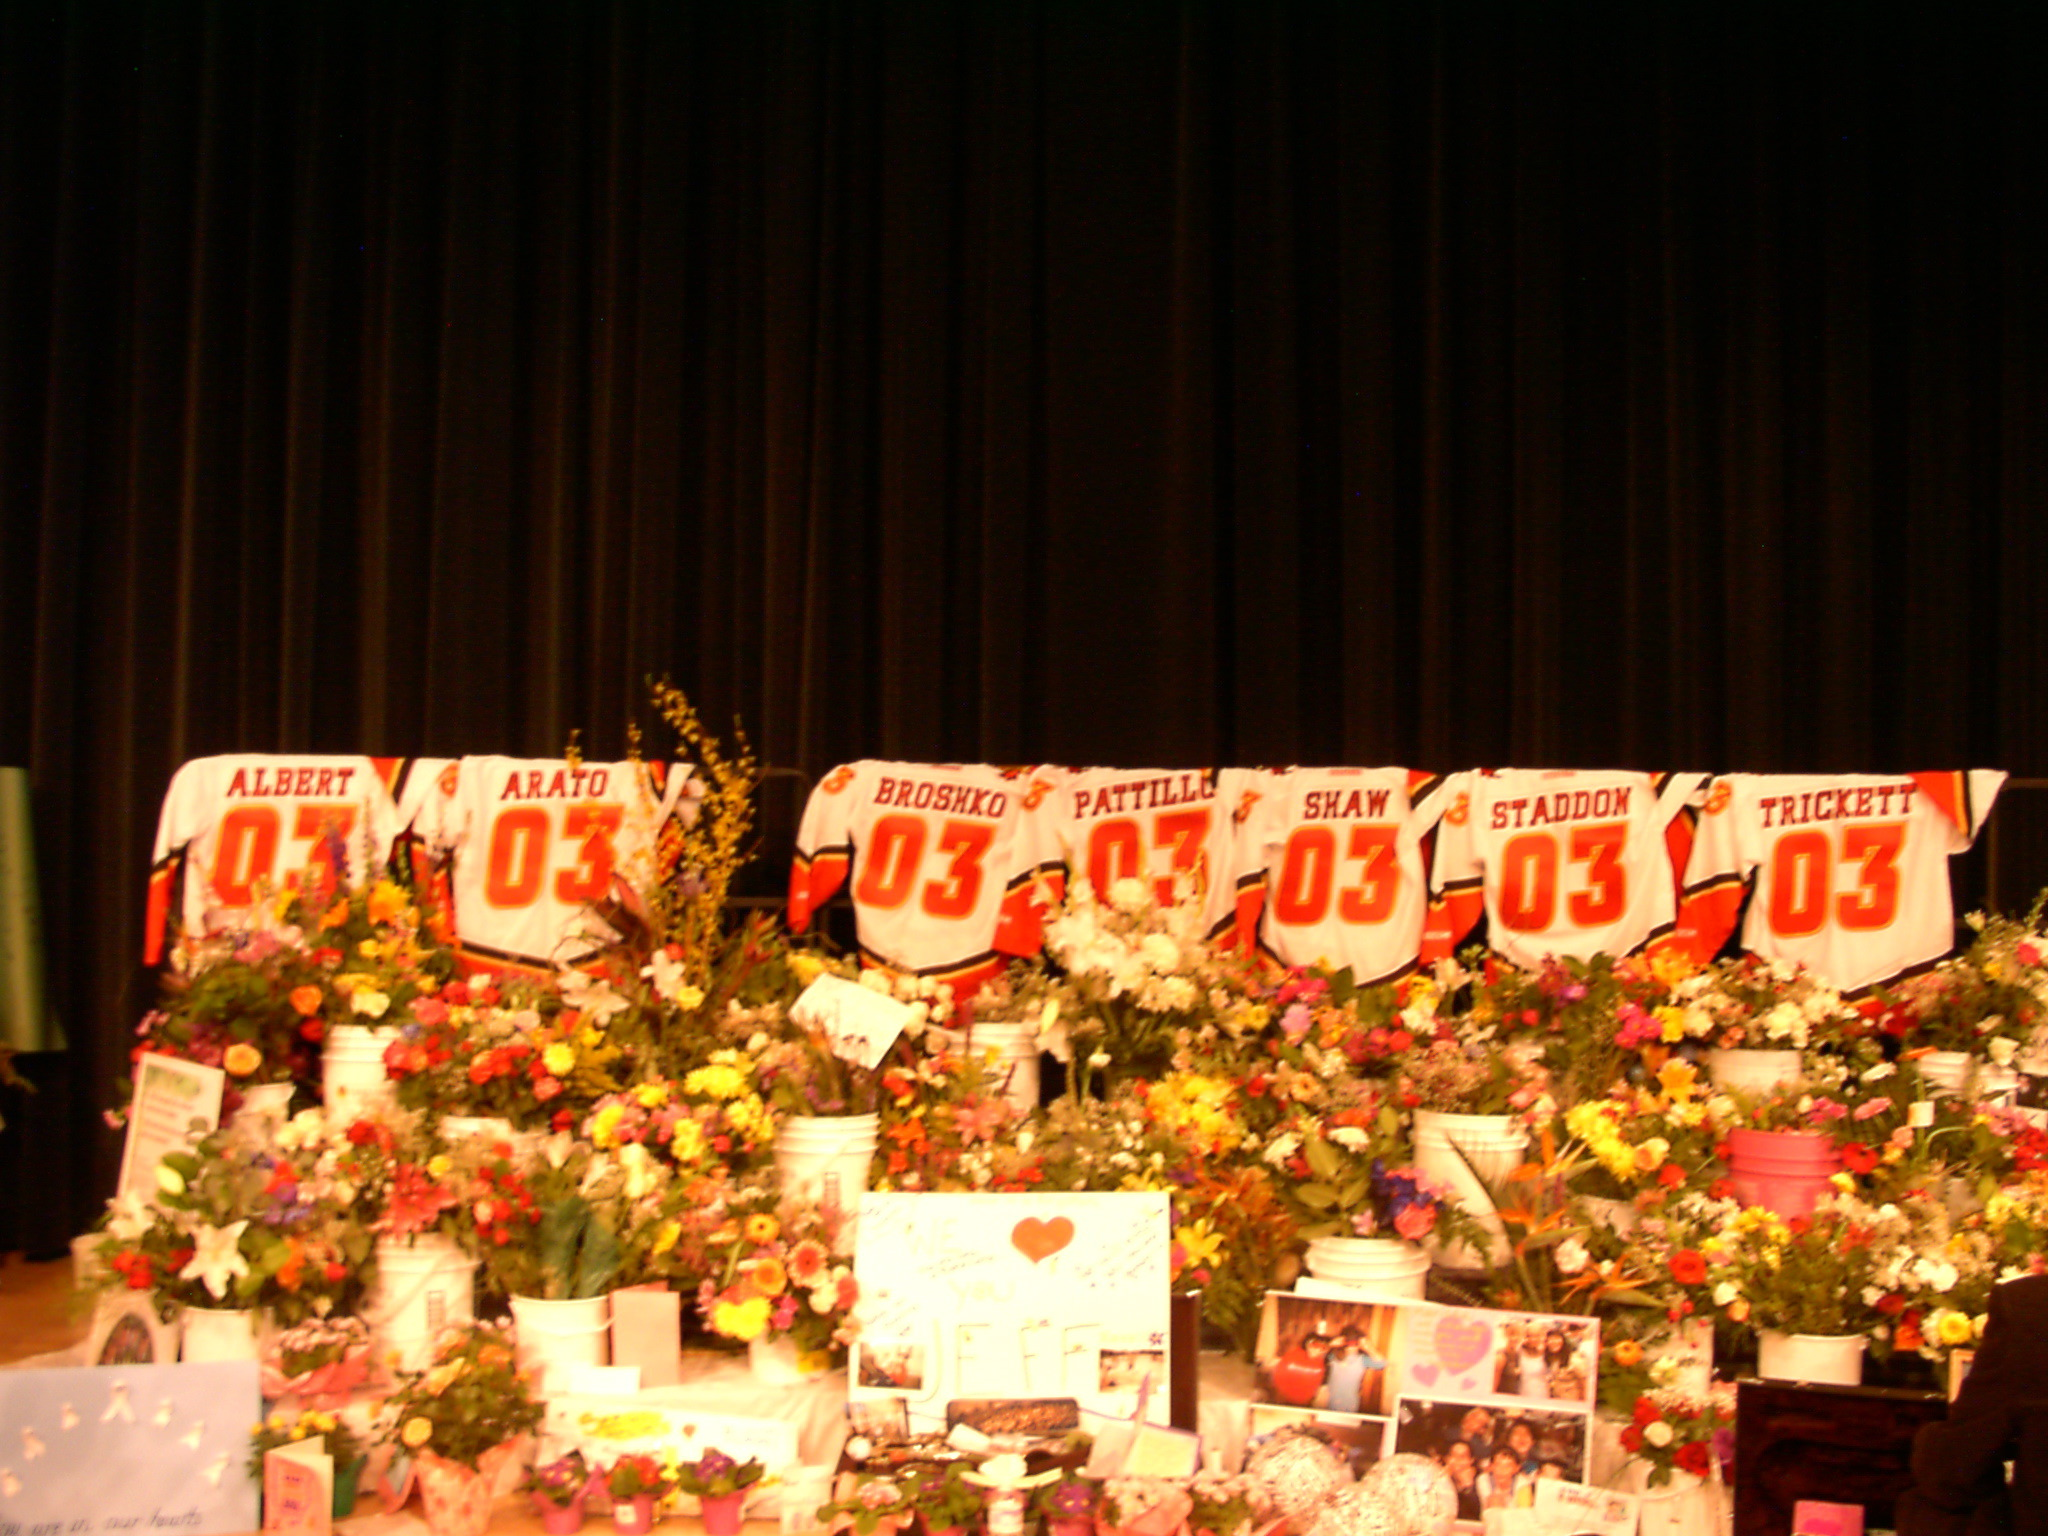 4 STS Auditorium with Calgary Flames Jerseys at the Memorial